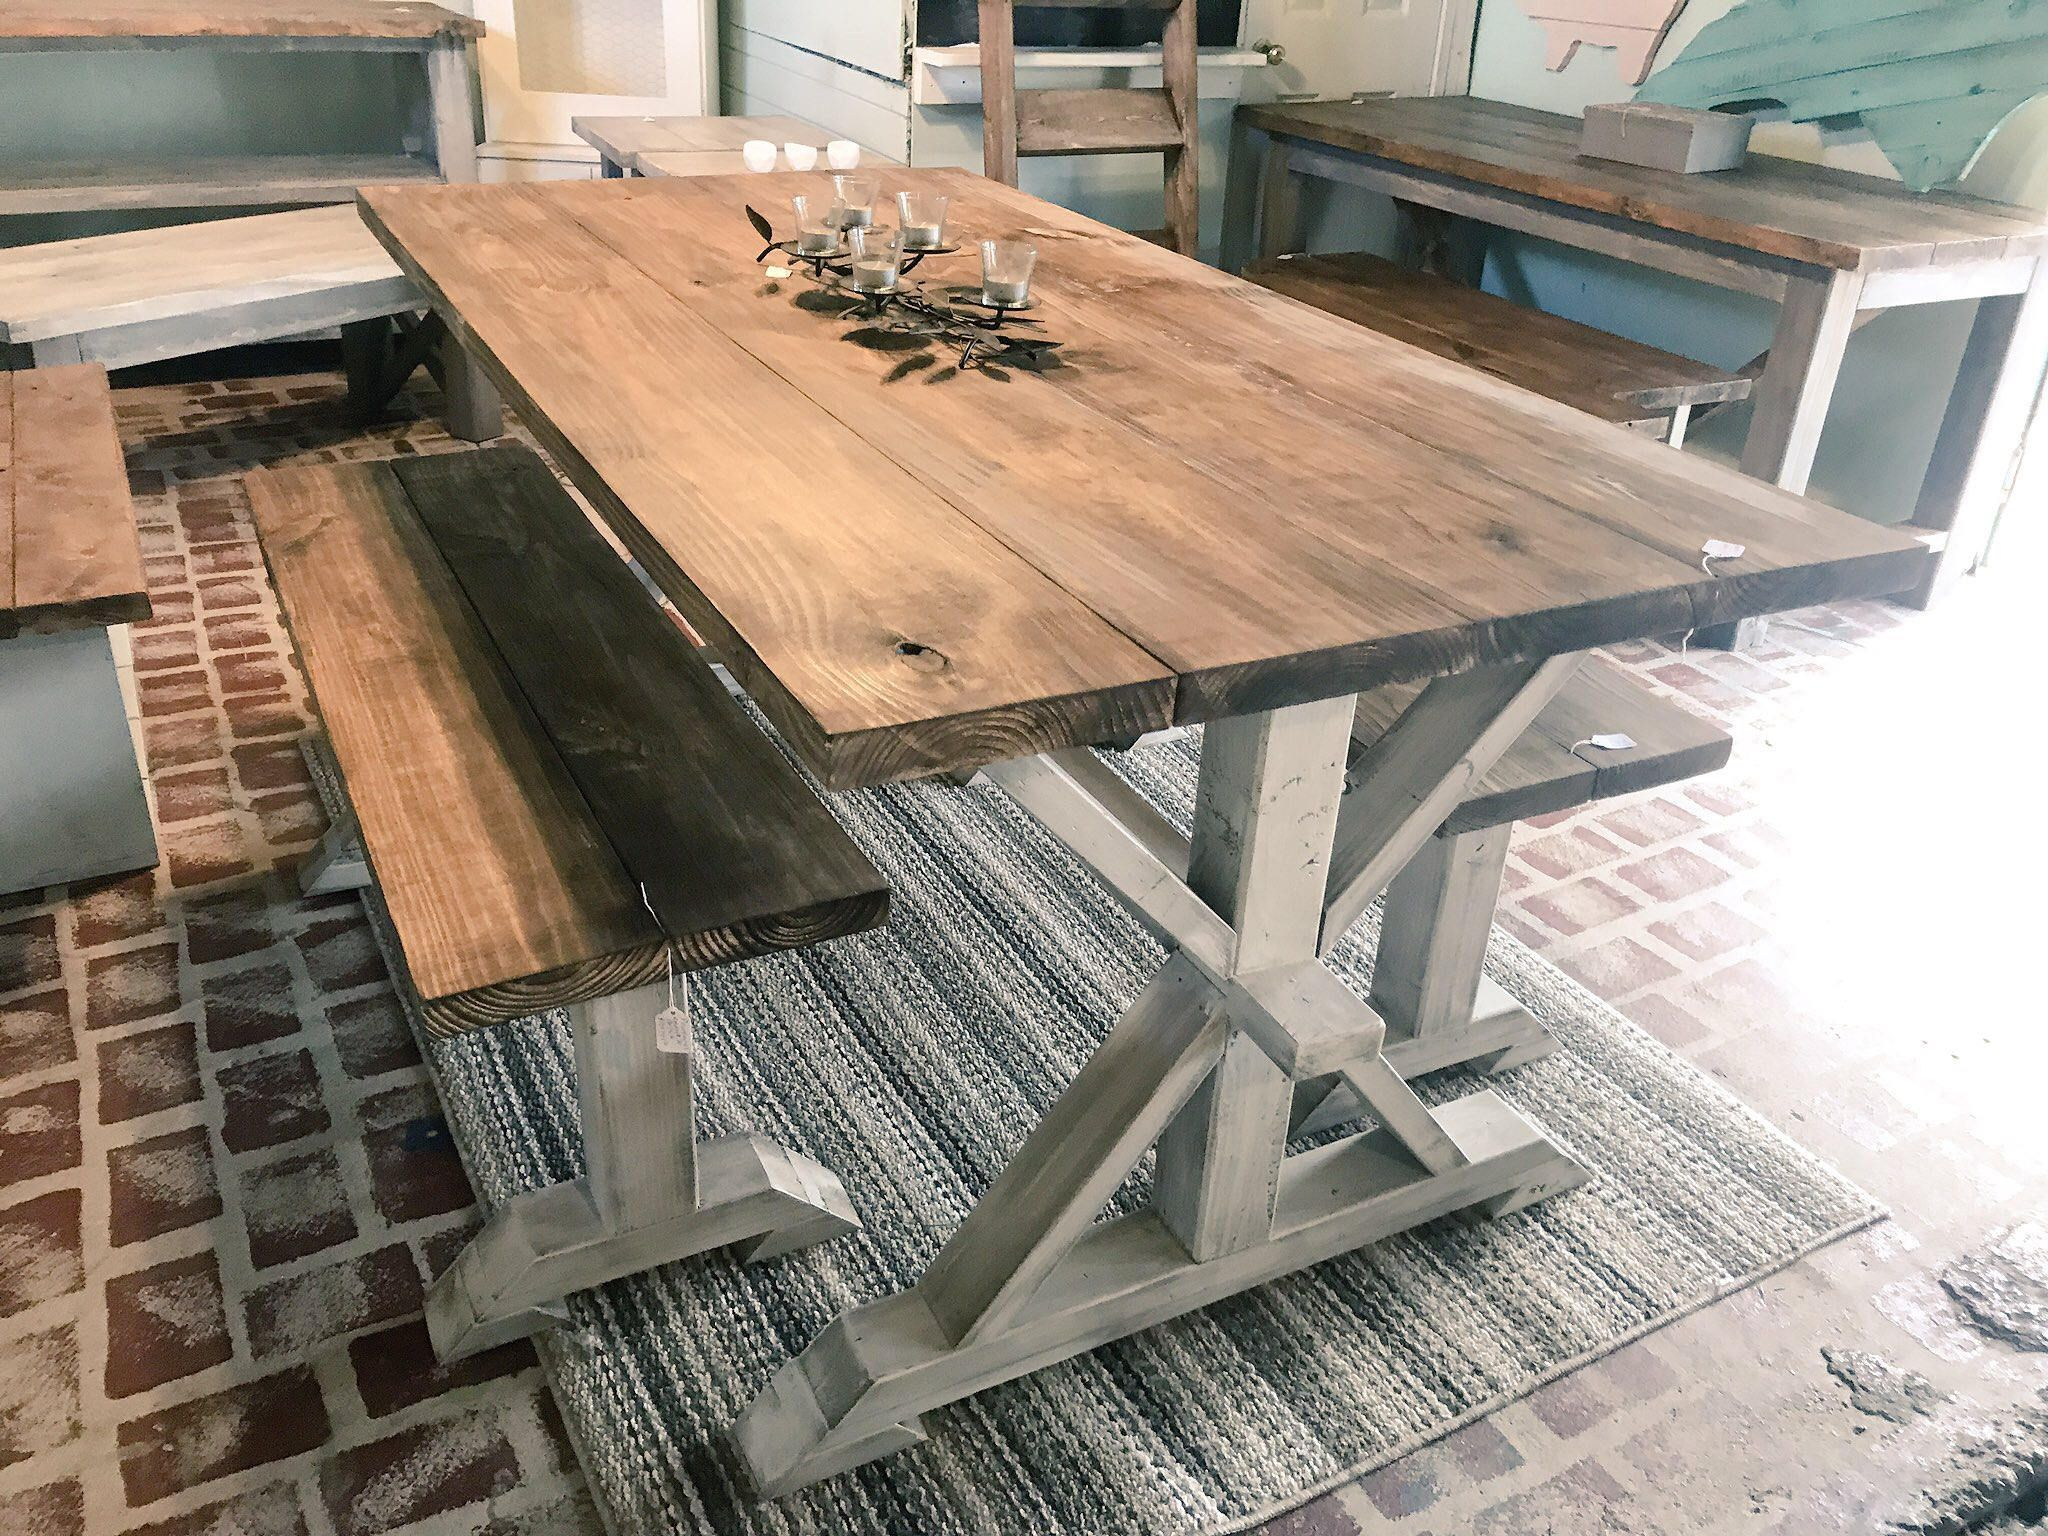 Rustic Pedestal Farmhouse Table With Benches Provincial Brown With White Distressed Base Di Farmhouse Kitchen Tables Rustic Farmhouse Table Kitchen Table Bench